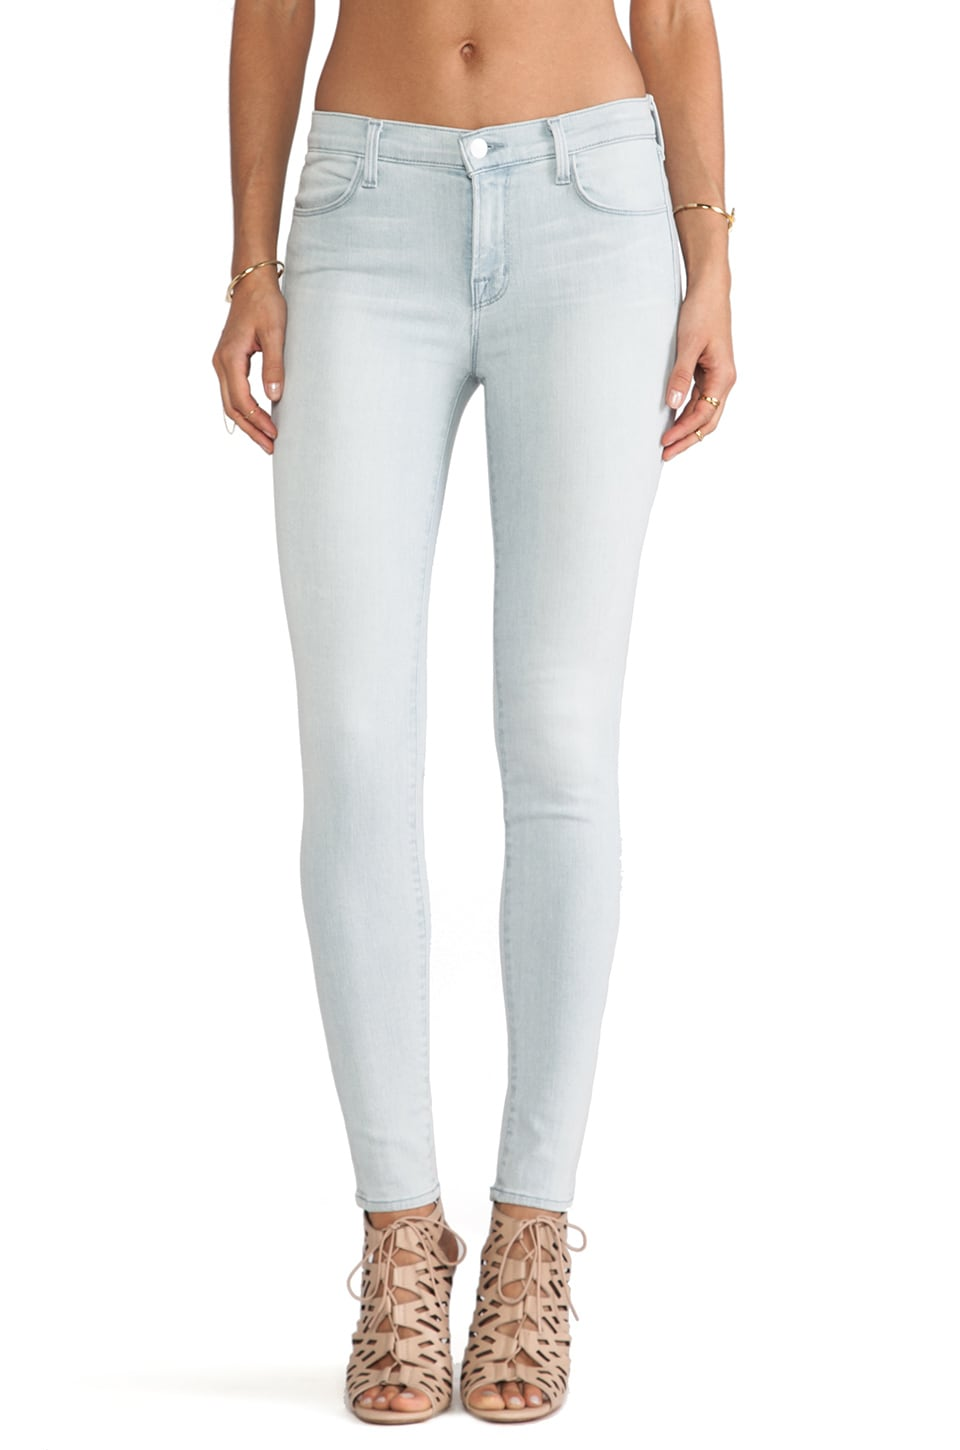 J Brand Mid Rise Skinny in Intuition